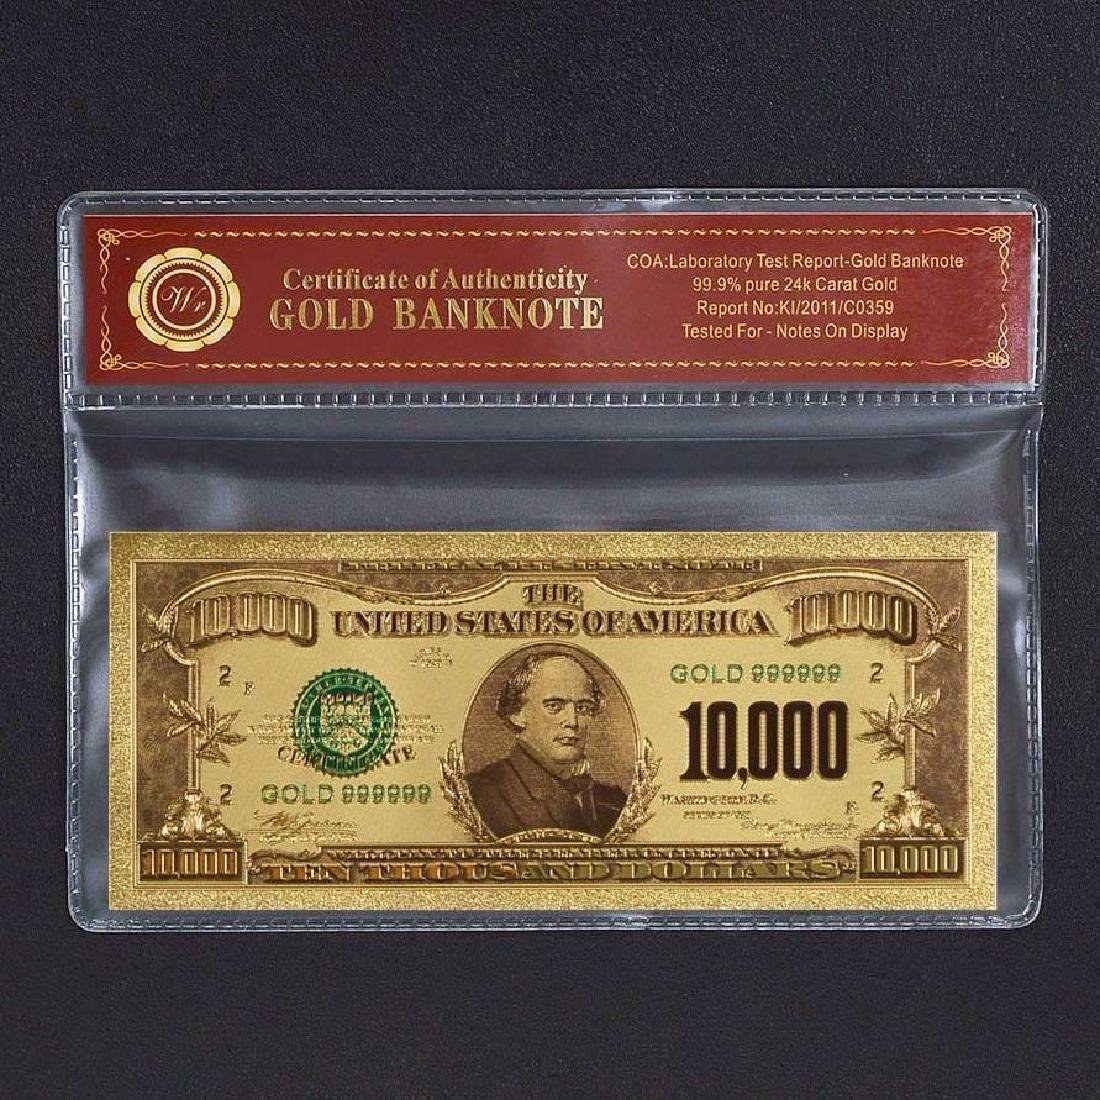 USA $10,000 24K Gold Clad Banknote